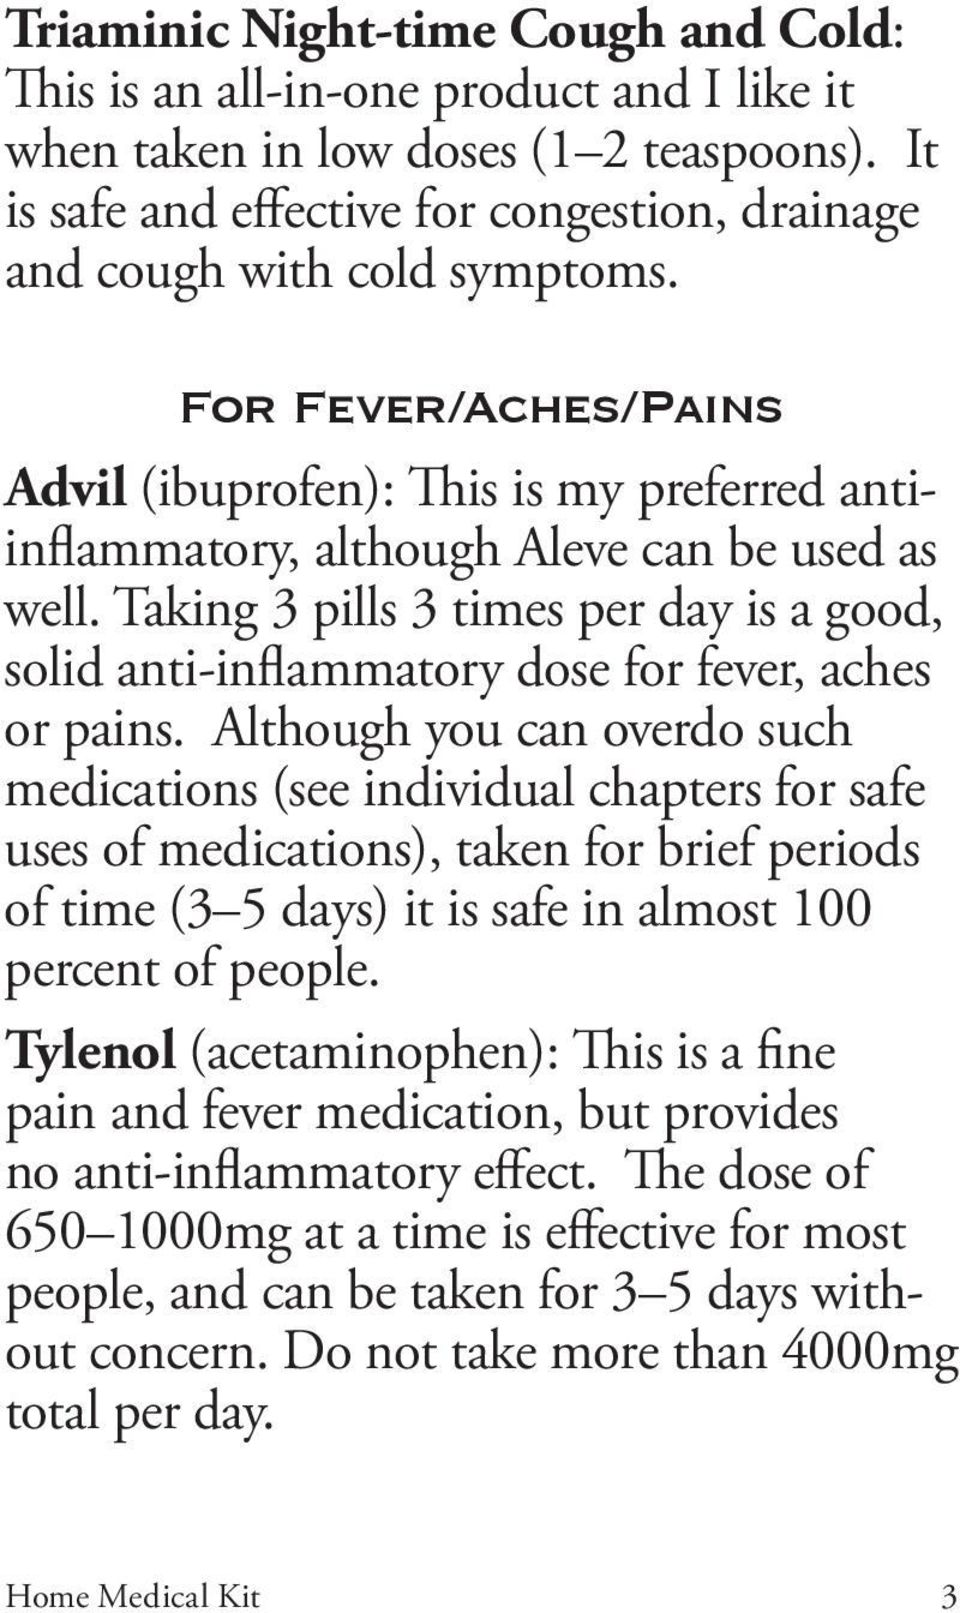 Taking 3 pills 3 times per day is a good, solid anti-inflammatory dose for fever, aches or pains.